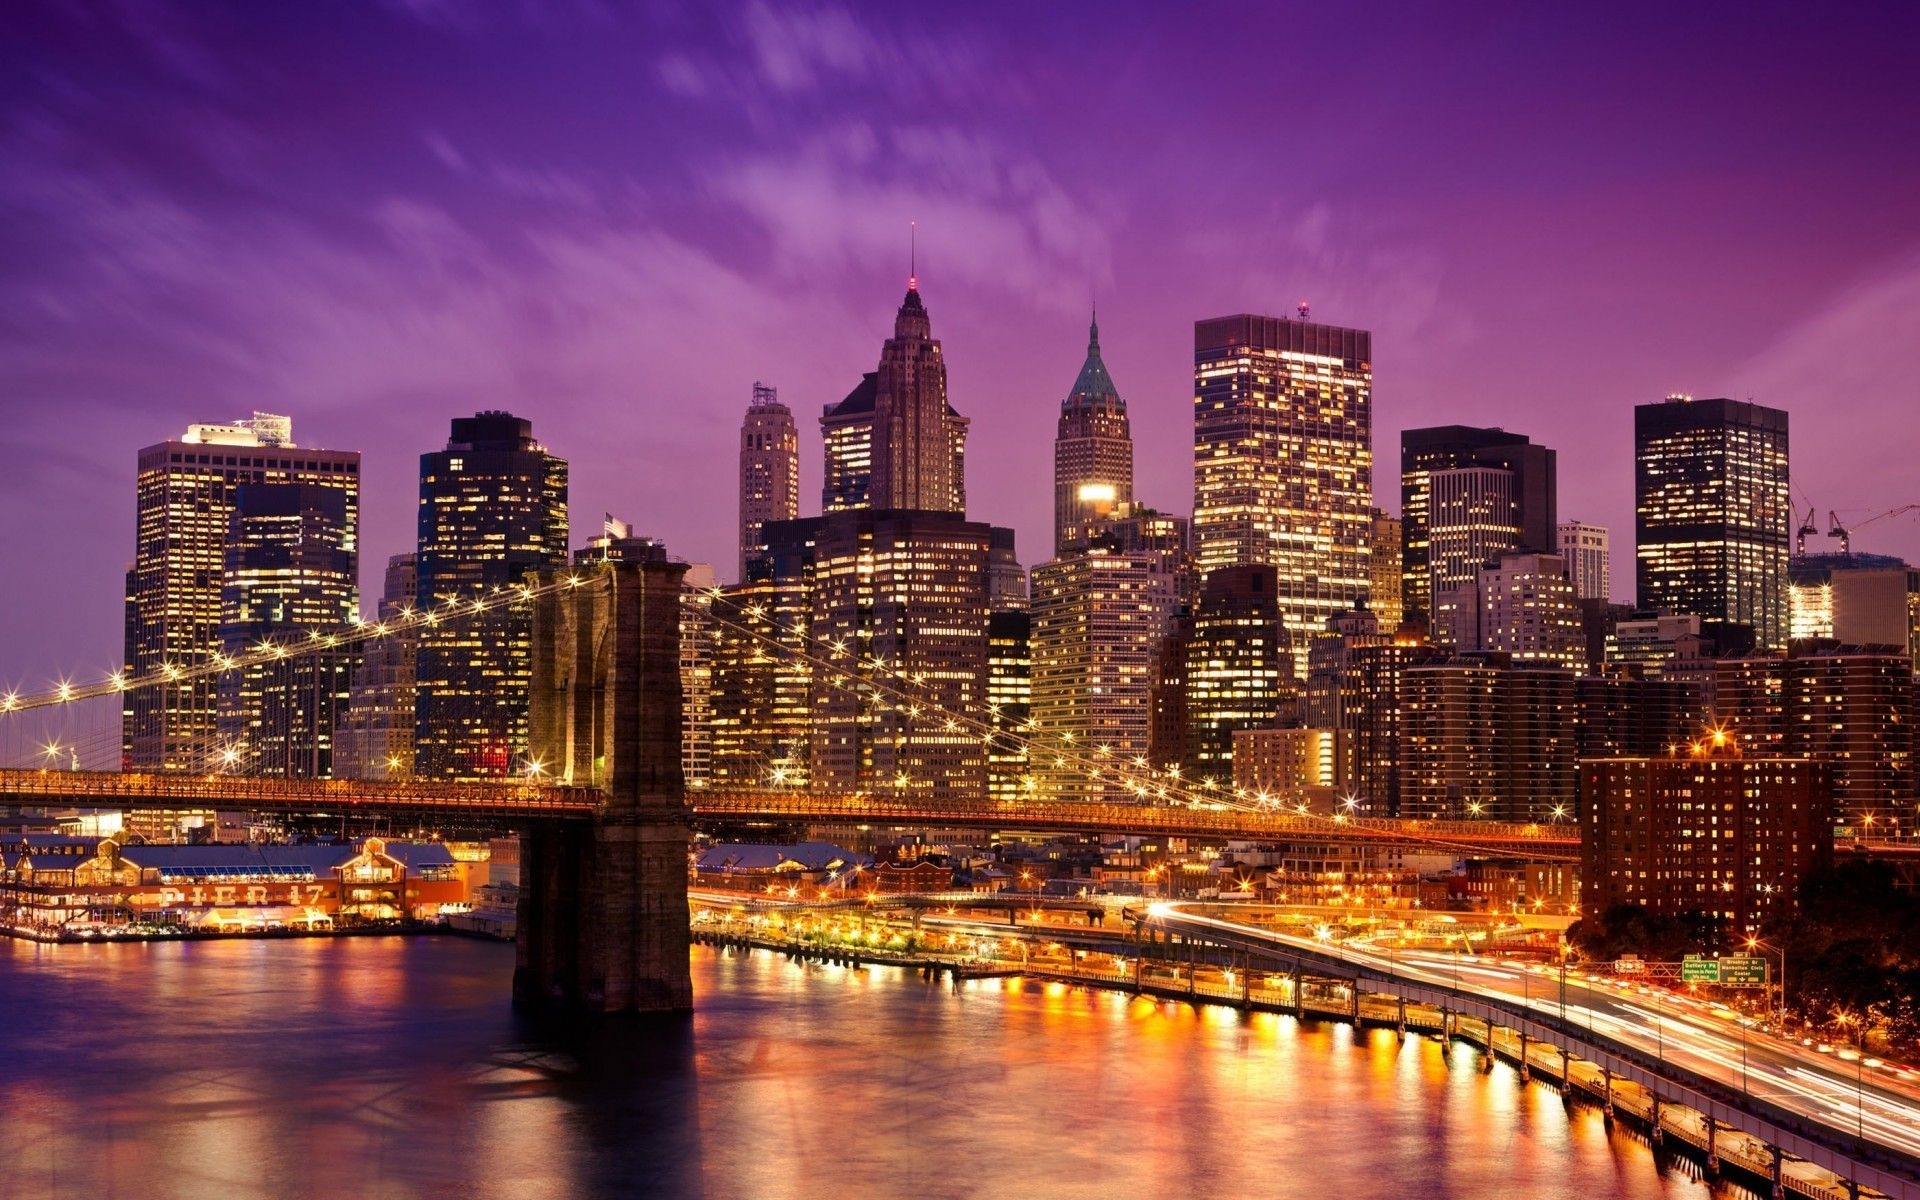 new york city backgrounds group (72+)